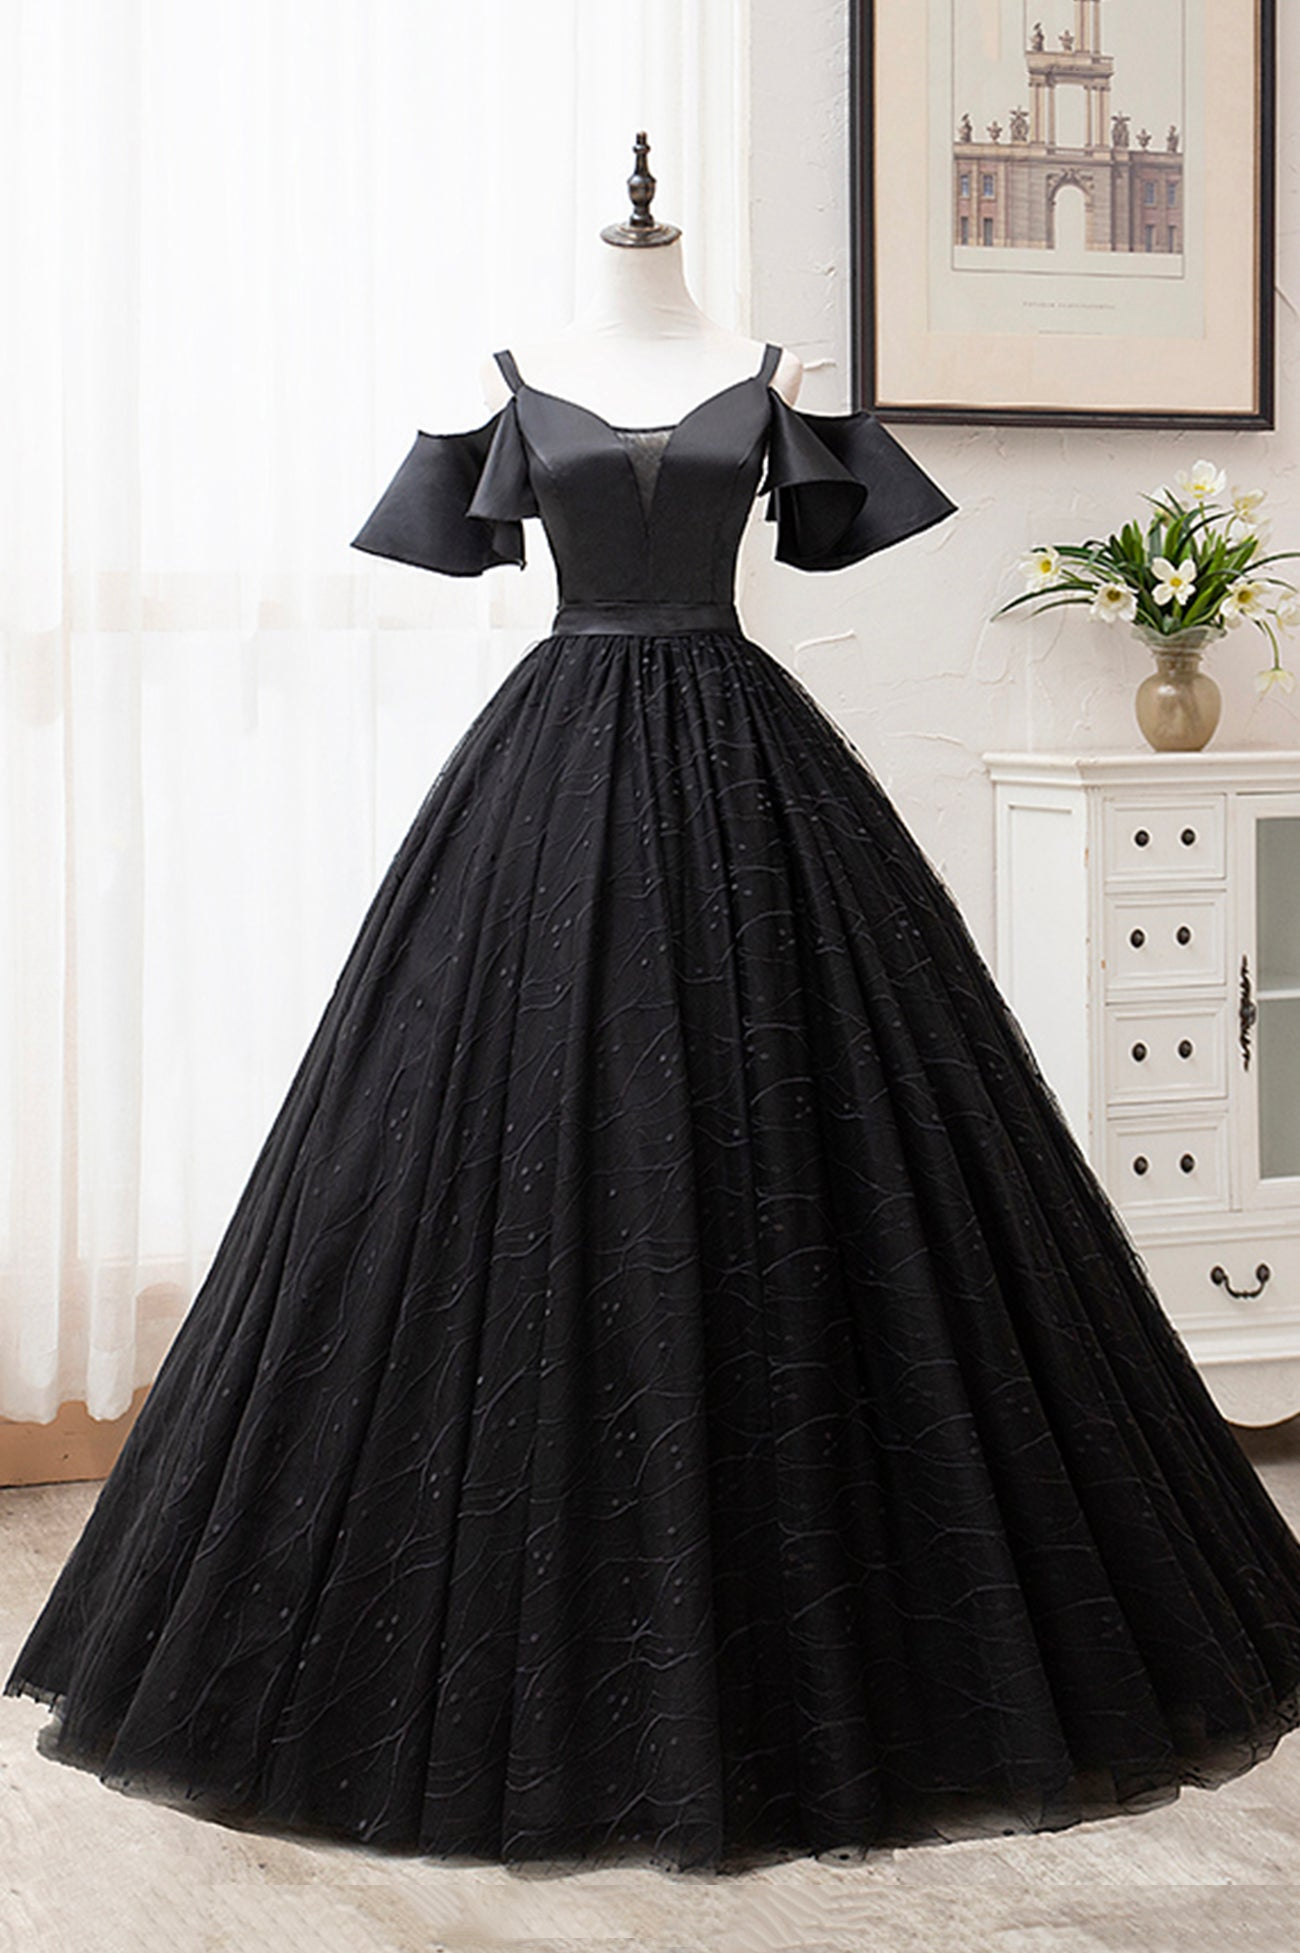 Black A line tulle long ball gown dress formal dress